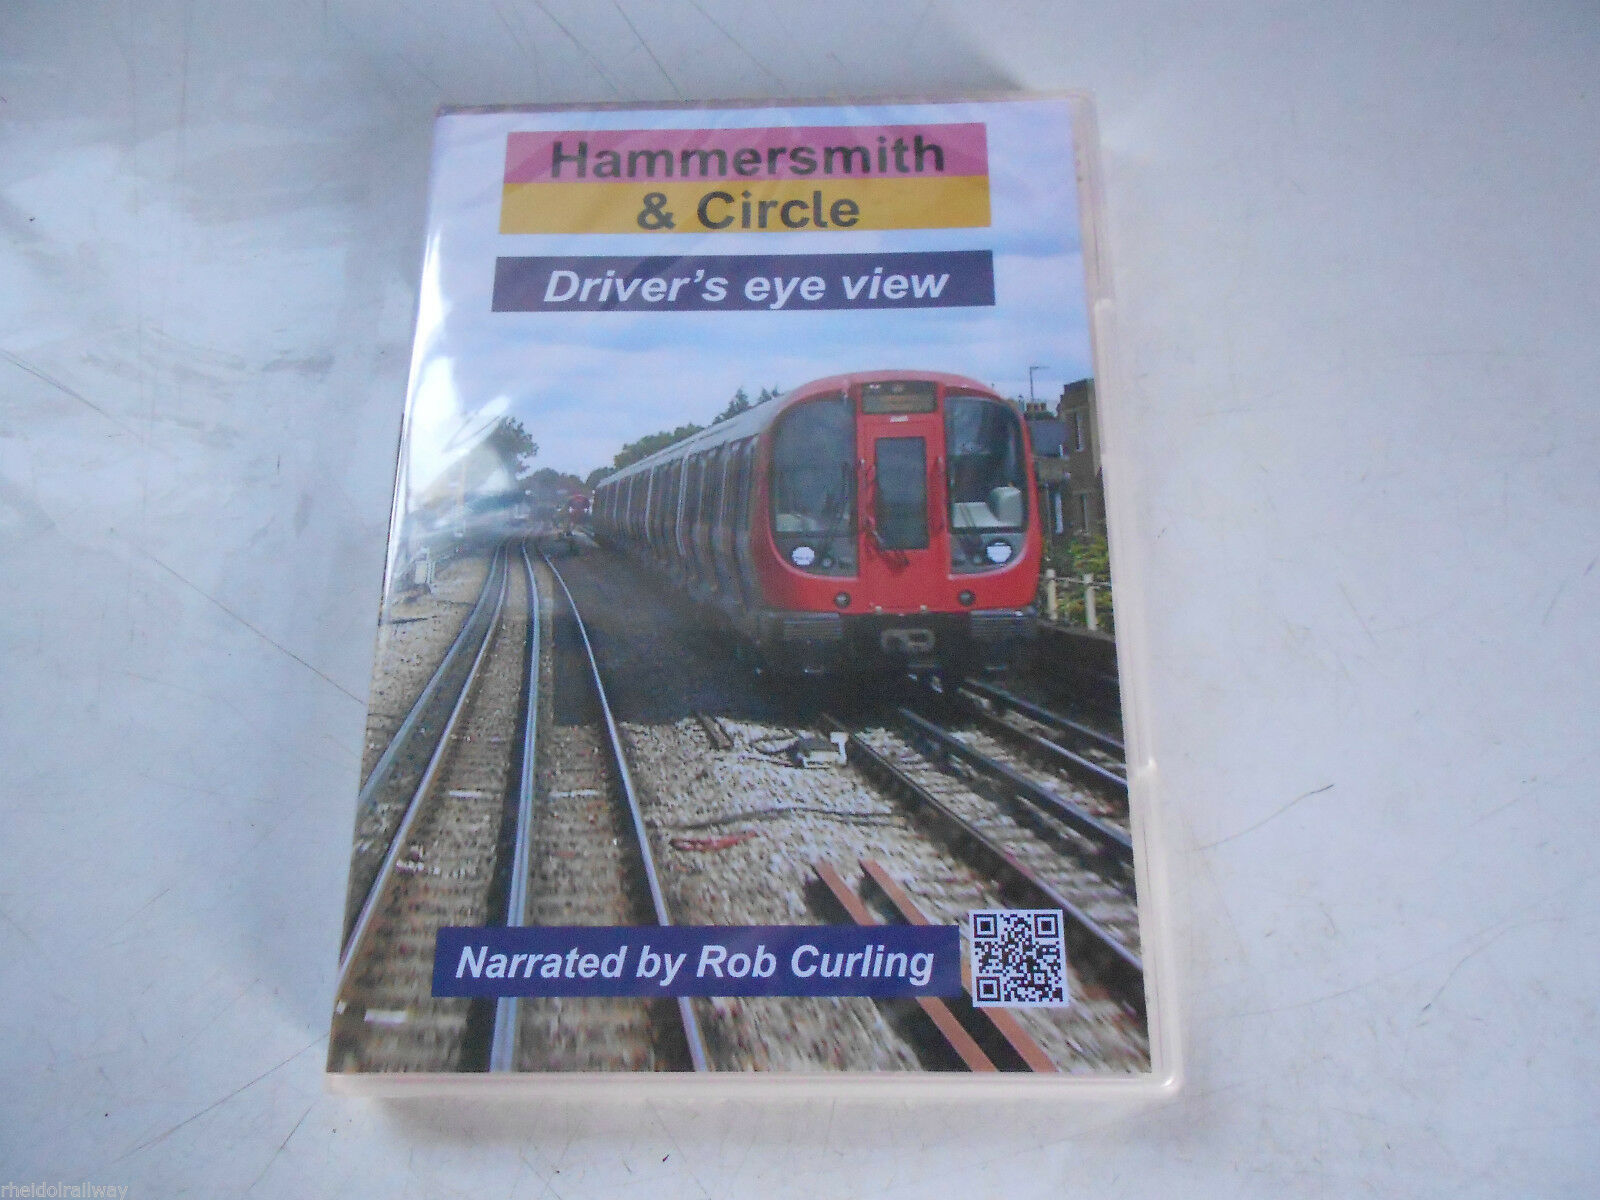 Underground, Hammersmith & Circle, Driver's Eye View, Narrated by Rob Curling DVD - The Vale of Rheidol Railway